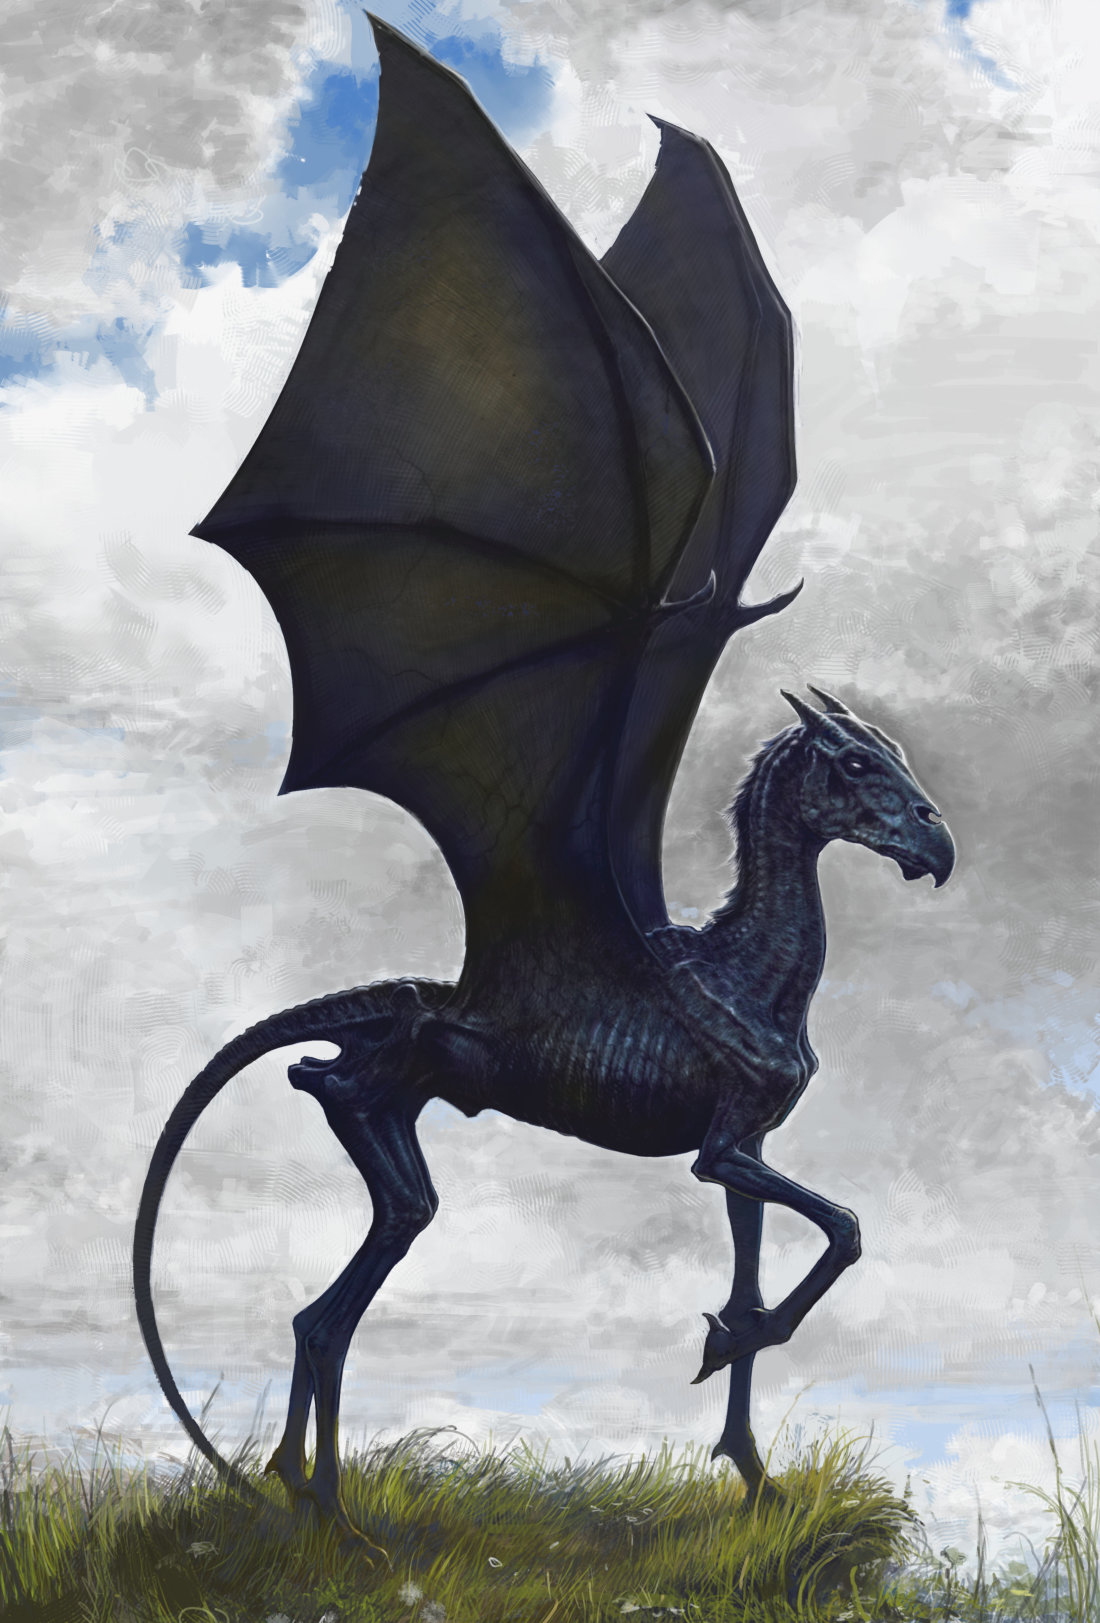 thestral 2